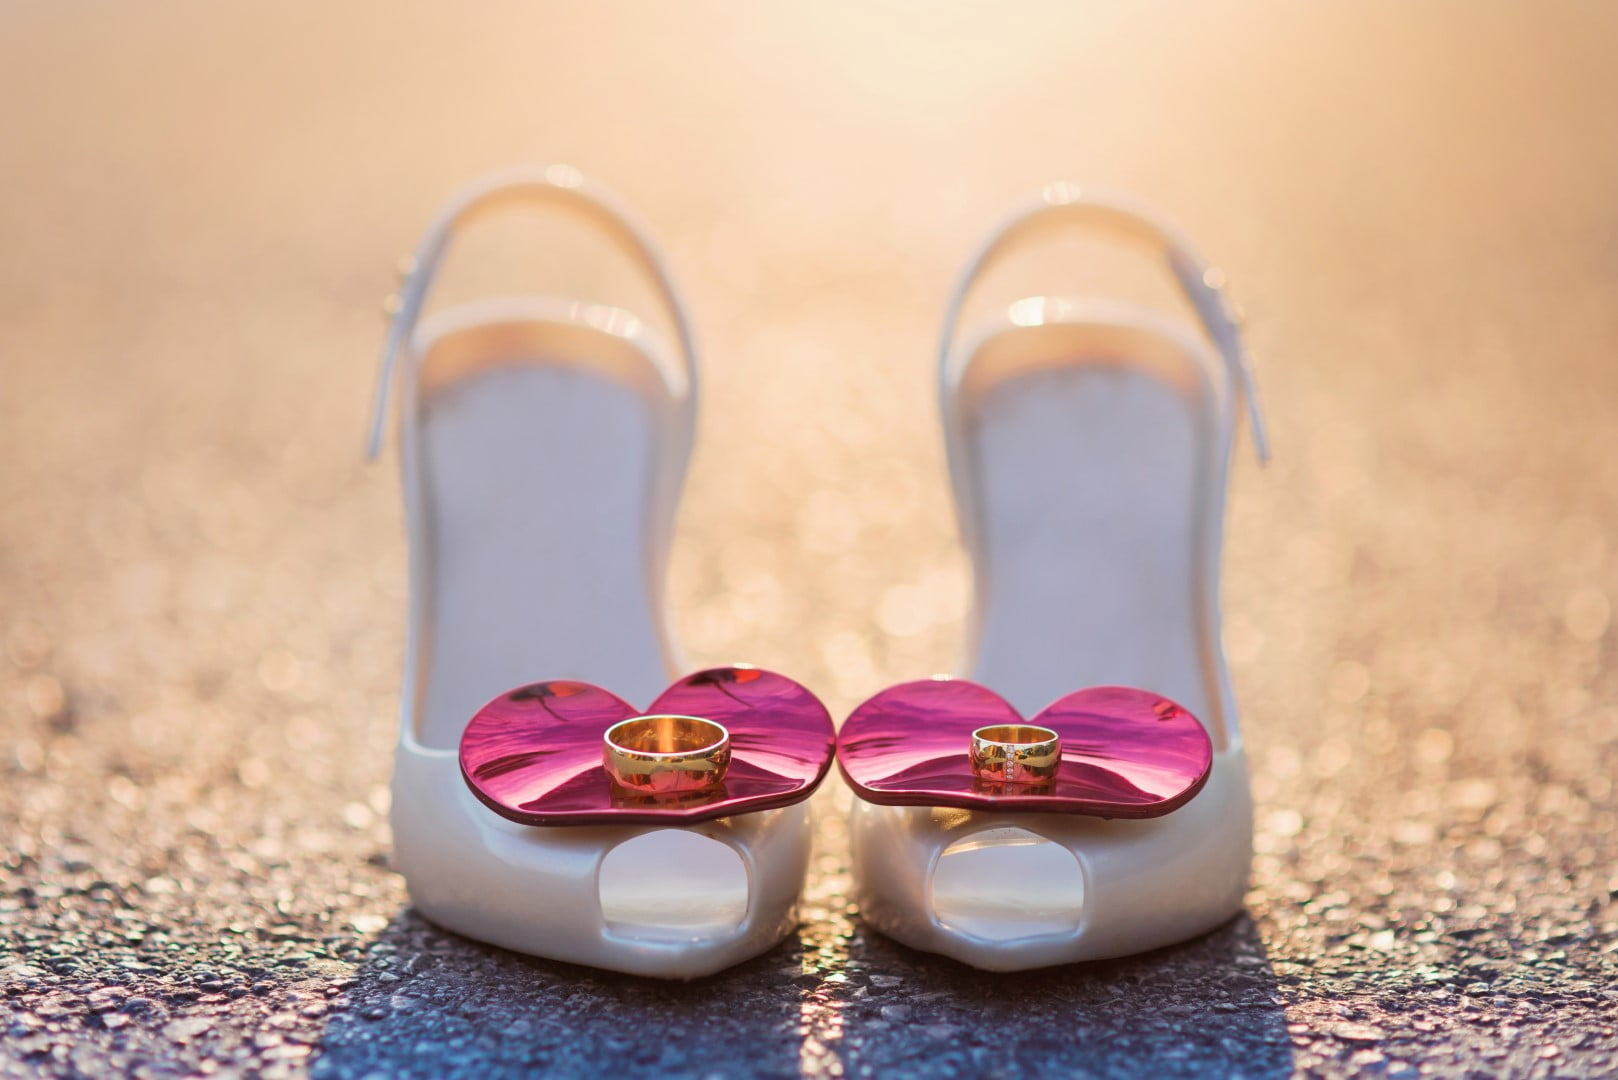 Wedding ring photo idea on the bride's shoes